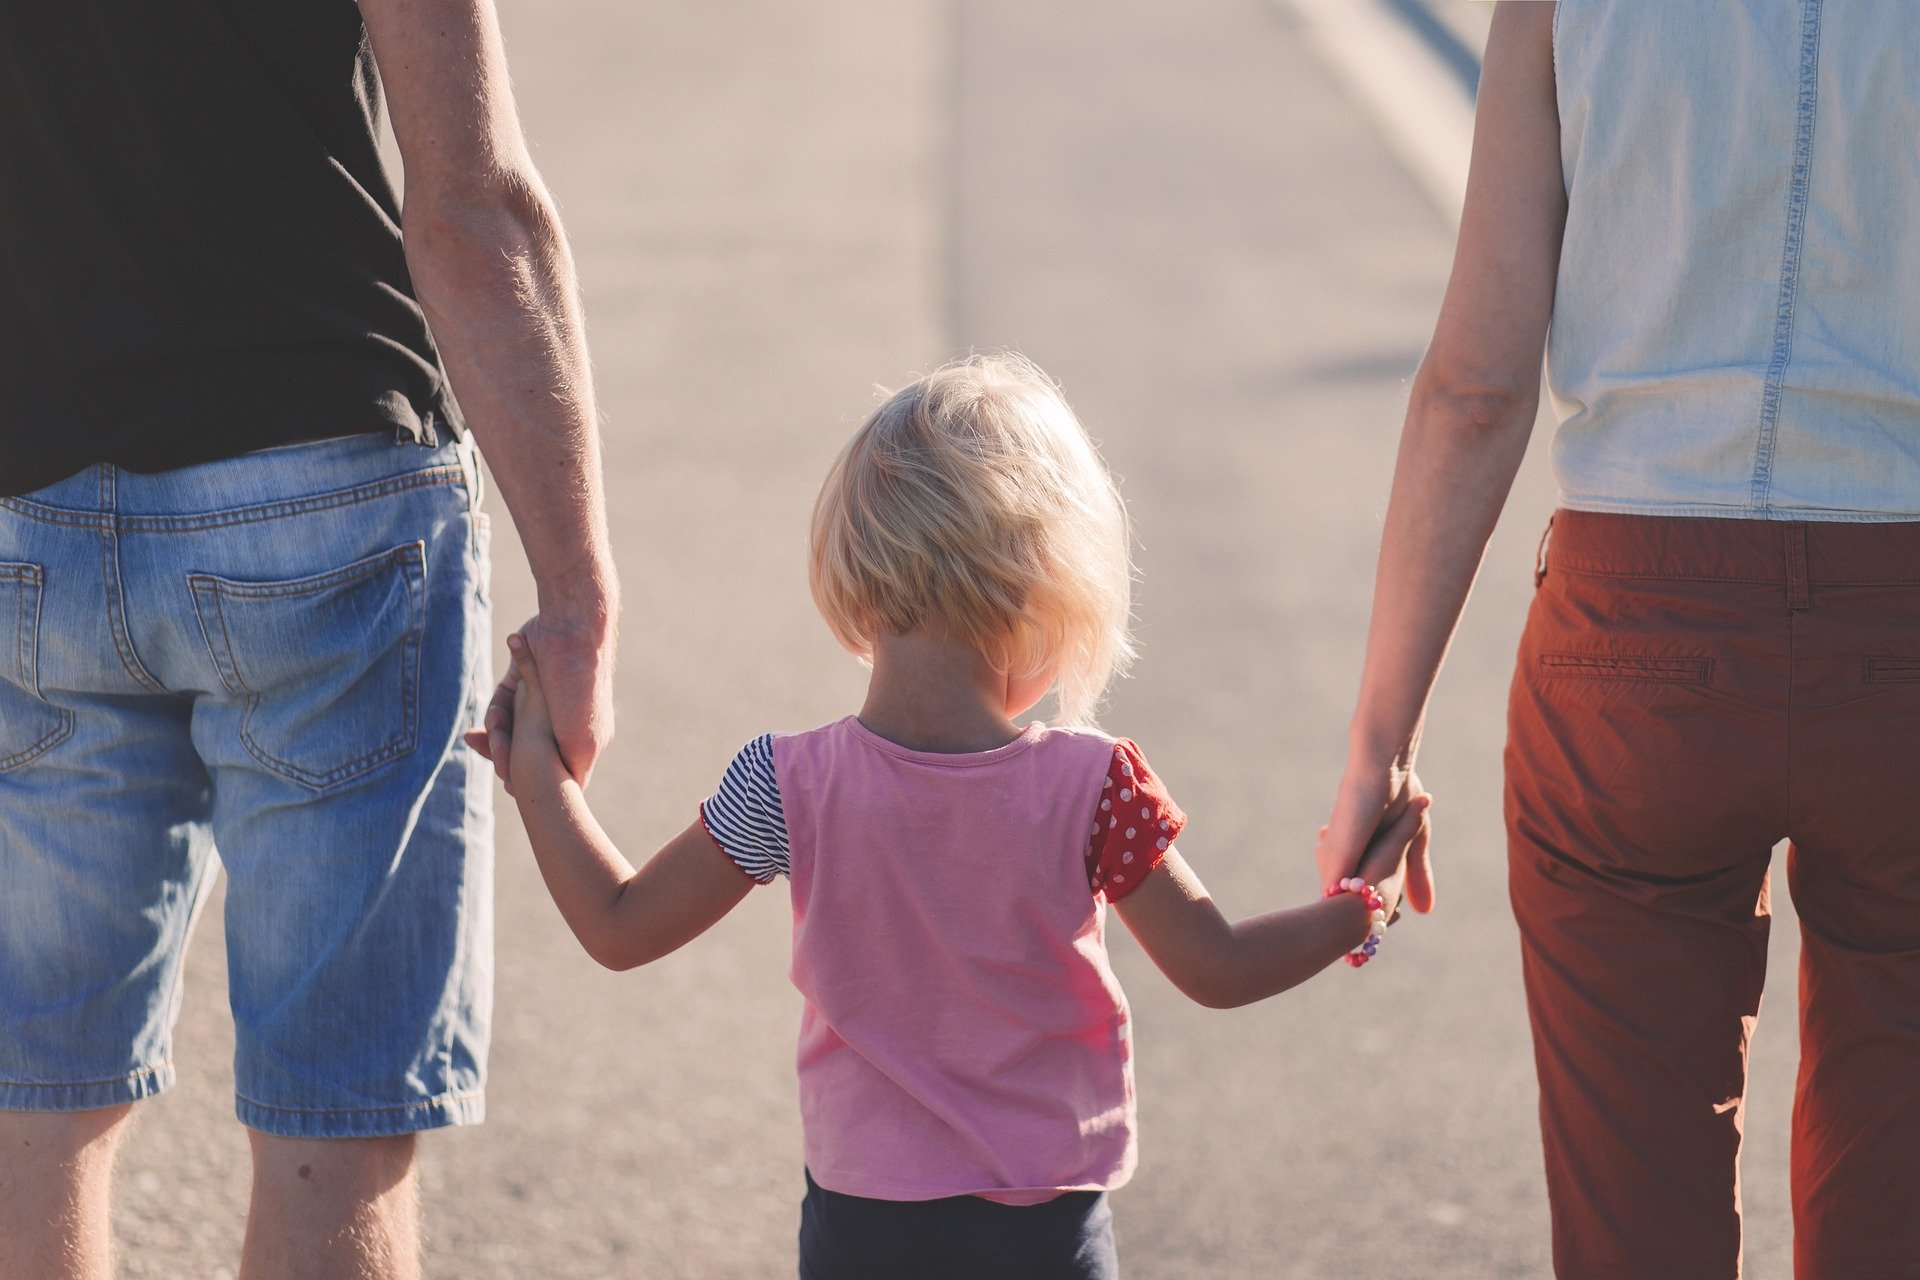 A child holding the hands of two adults (parents, divorce, parenting, kids).